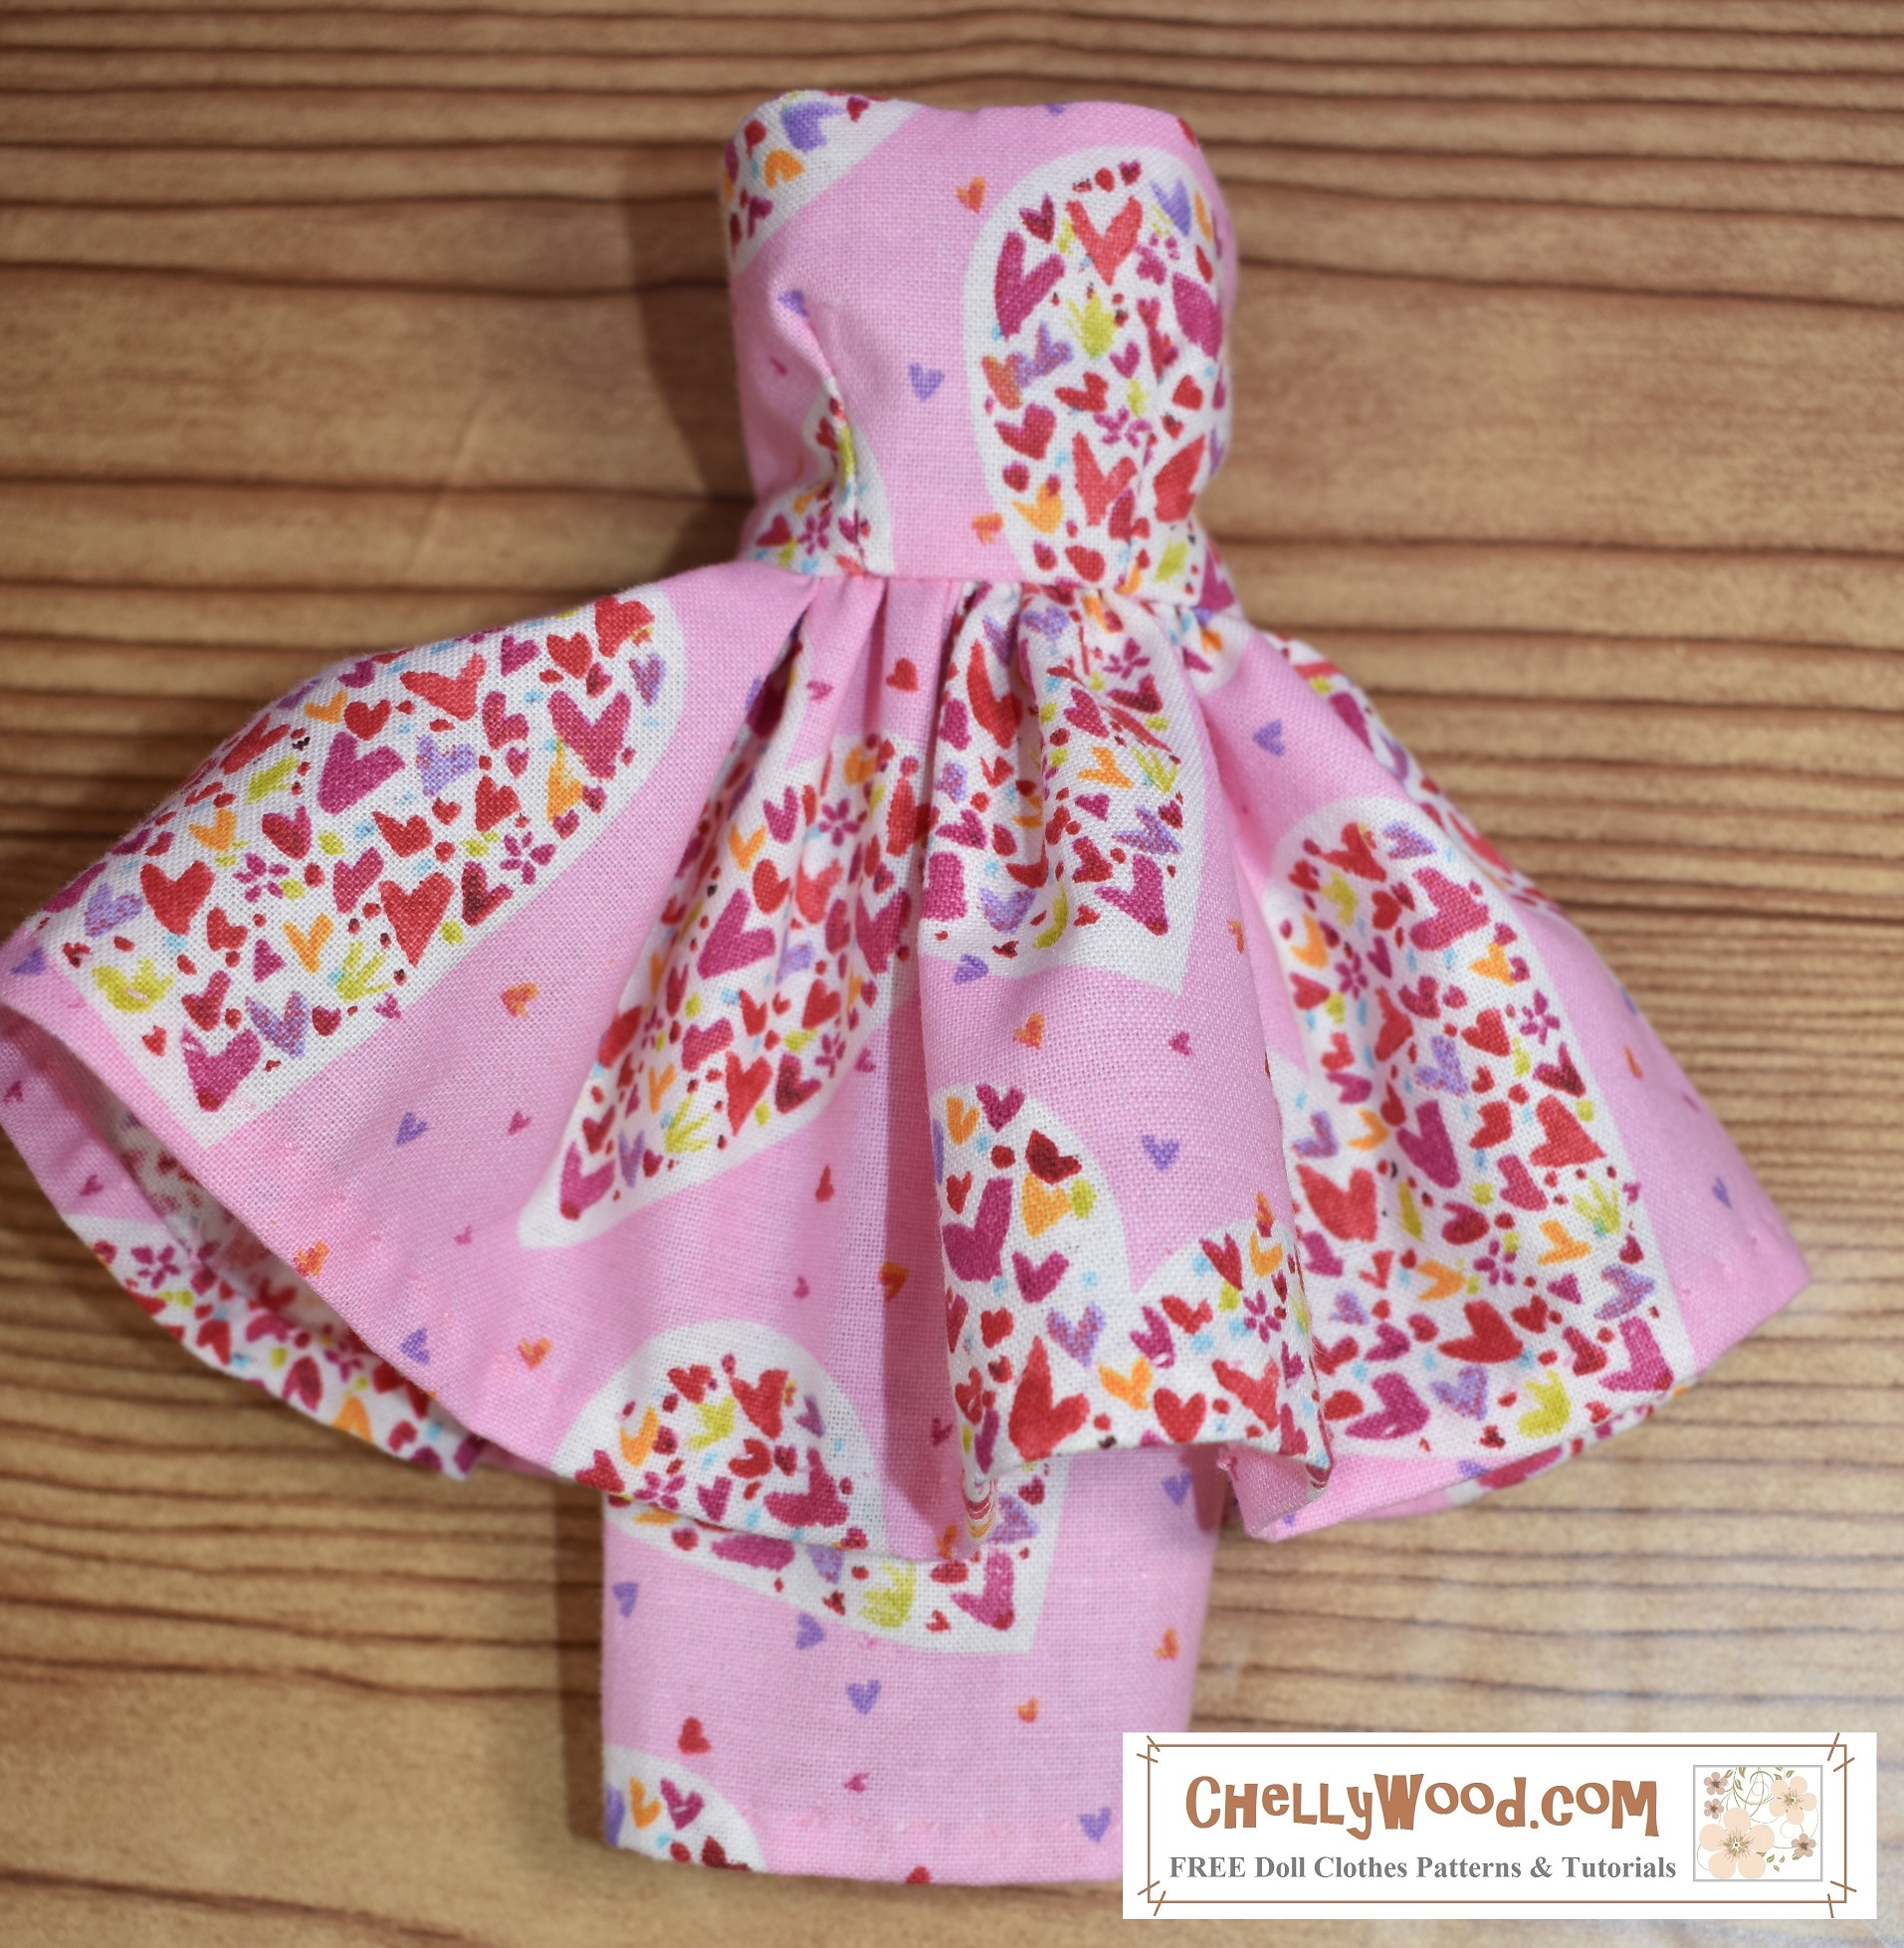 Here we see a strapless dress for fashion dolls. The dress has a pencil skirt topped with a flouncy skirt. The fabric is pink with multi-colored hearts splattered across the fabric in random patterns.